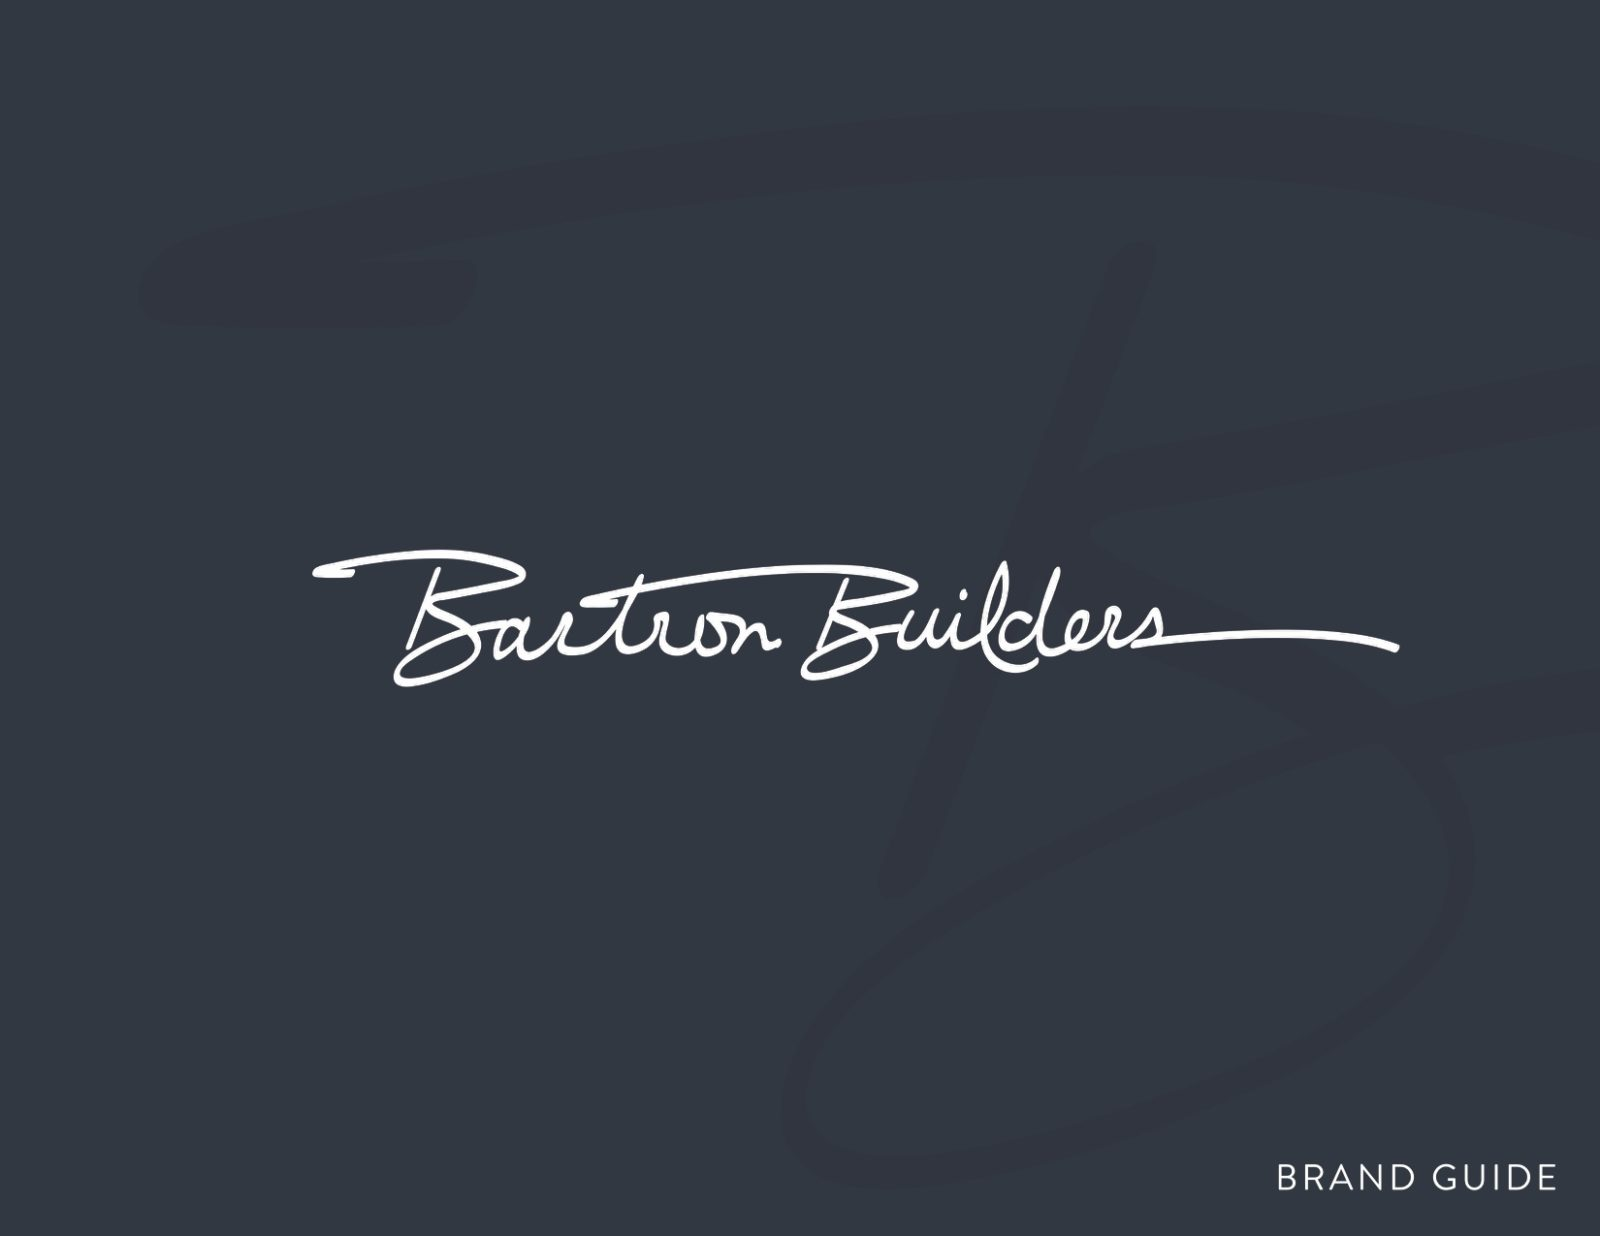 Bartron-Builders-Brand-Guide